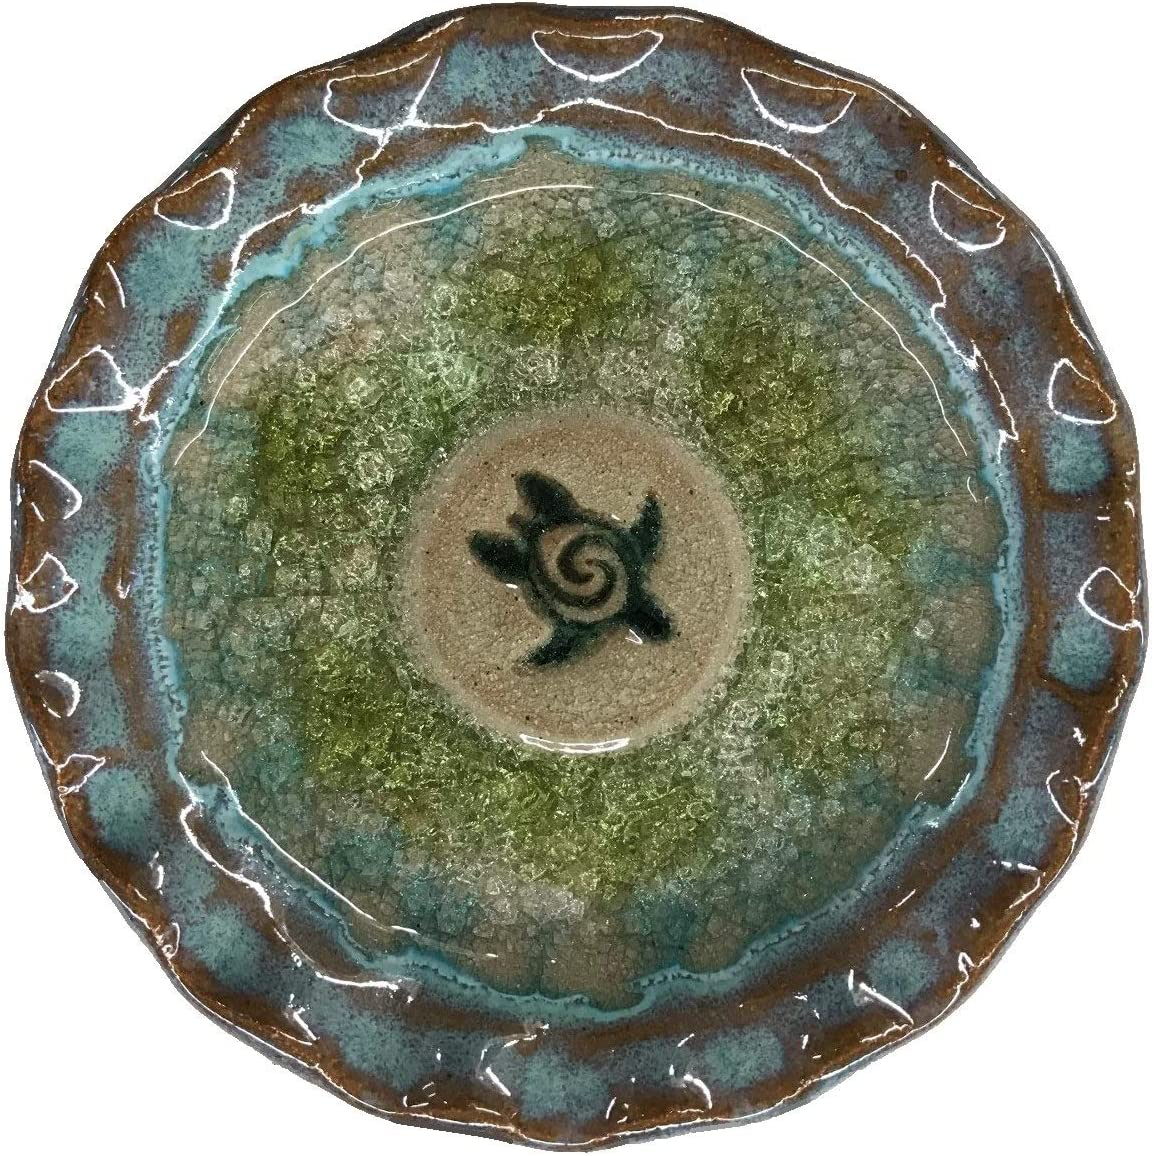 B Artisan Series Glazed Pottery Sea Turtle Icon Decorative Only Dish 4.75 Inches in Diameter